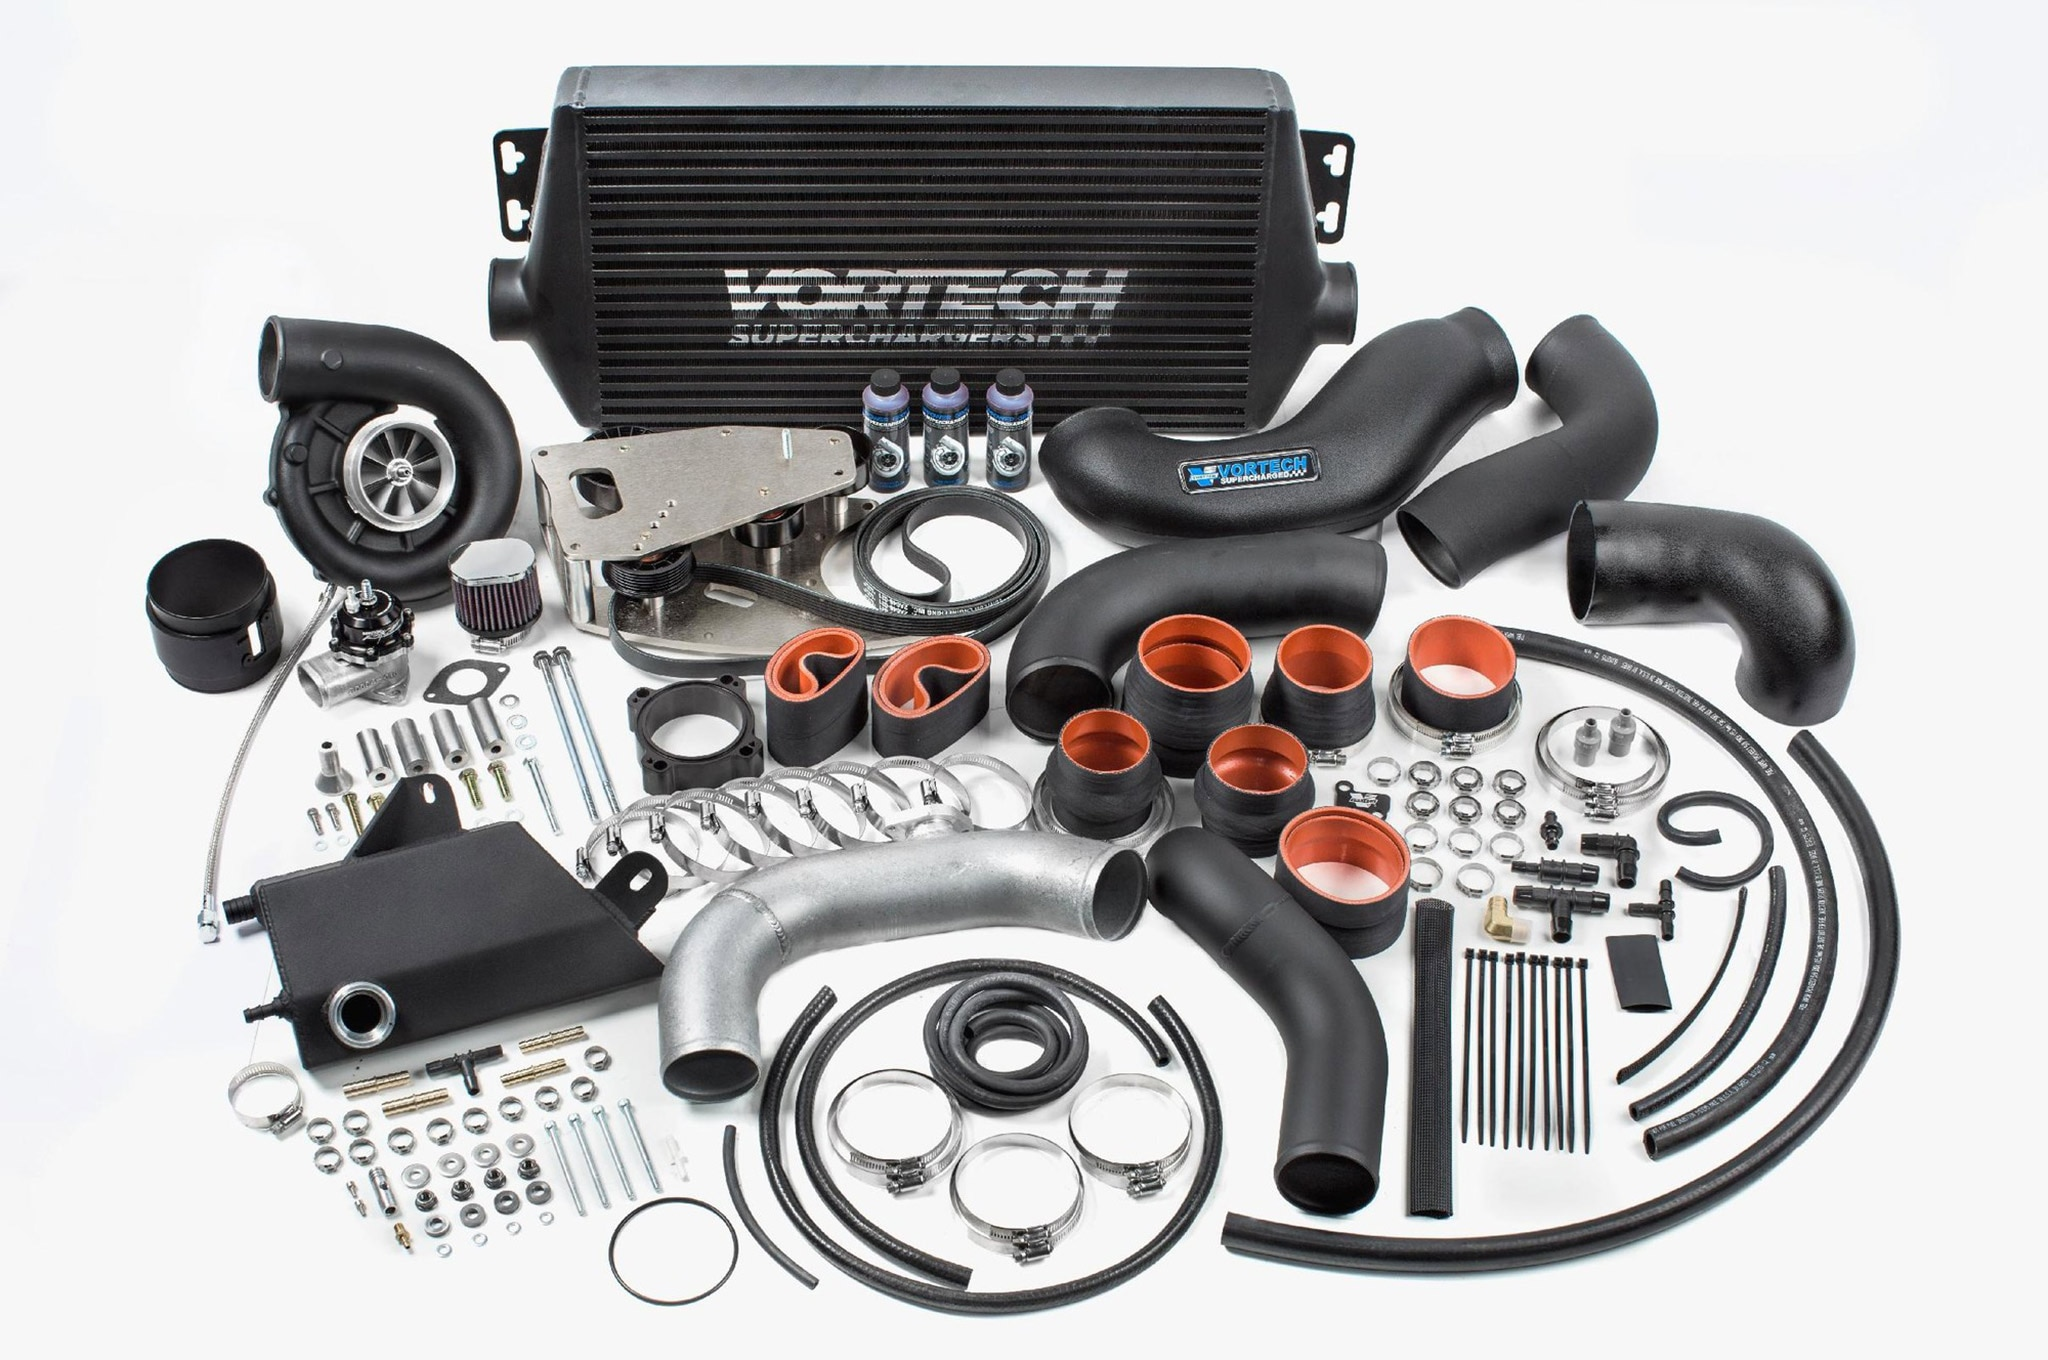 Vortech Supercharger 2015 Ford Mustang Gt Install 02 Kit